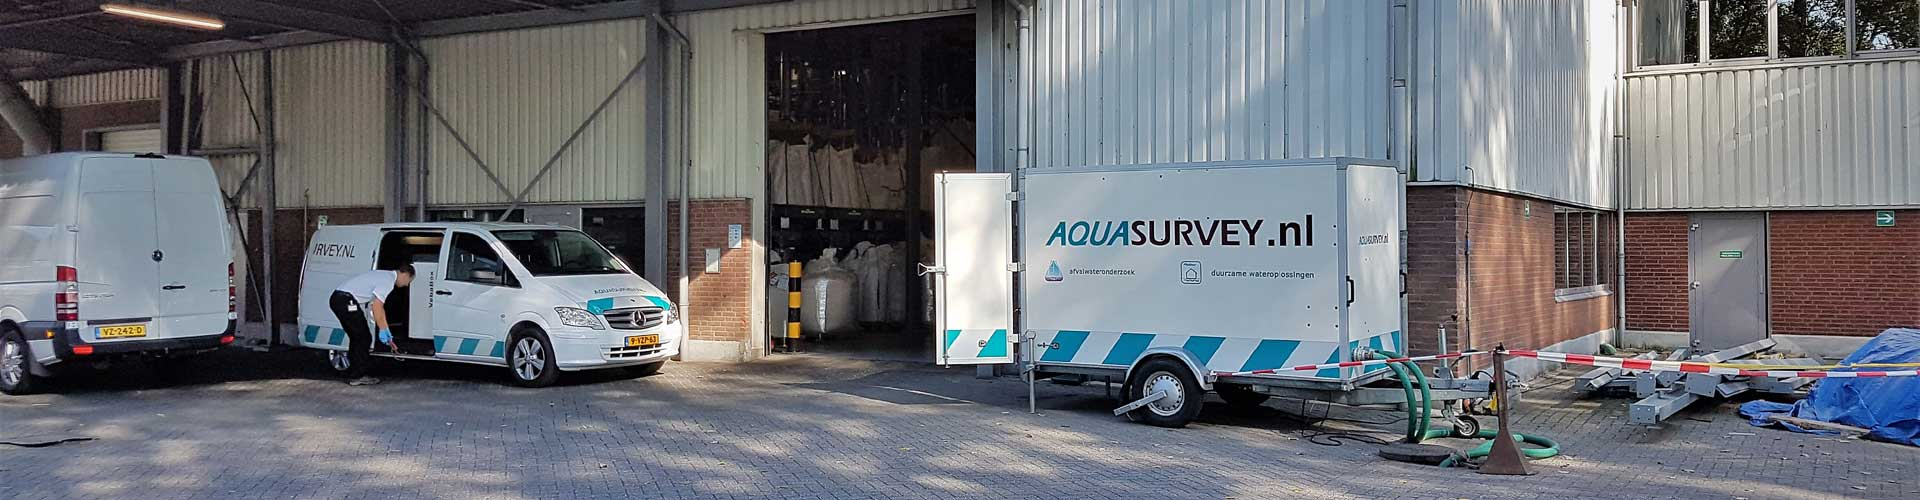 Aquasurvey overzicht meetopstelling HILE